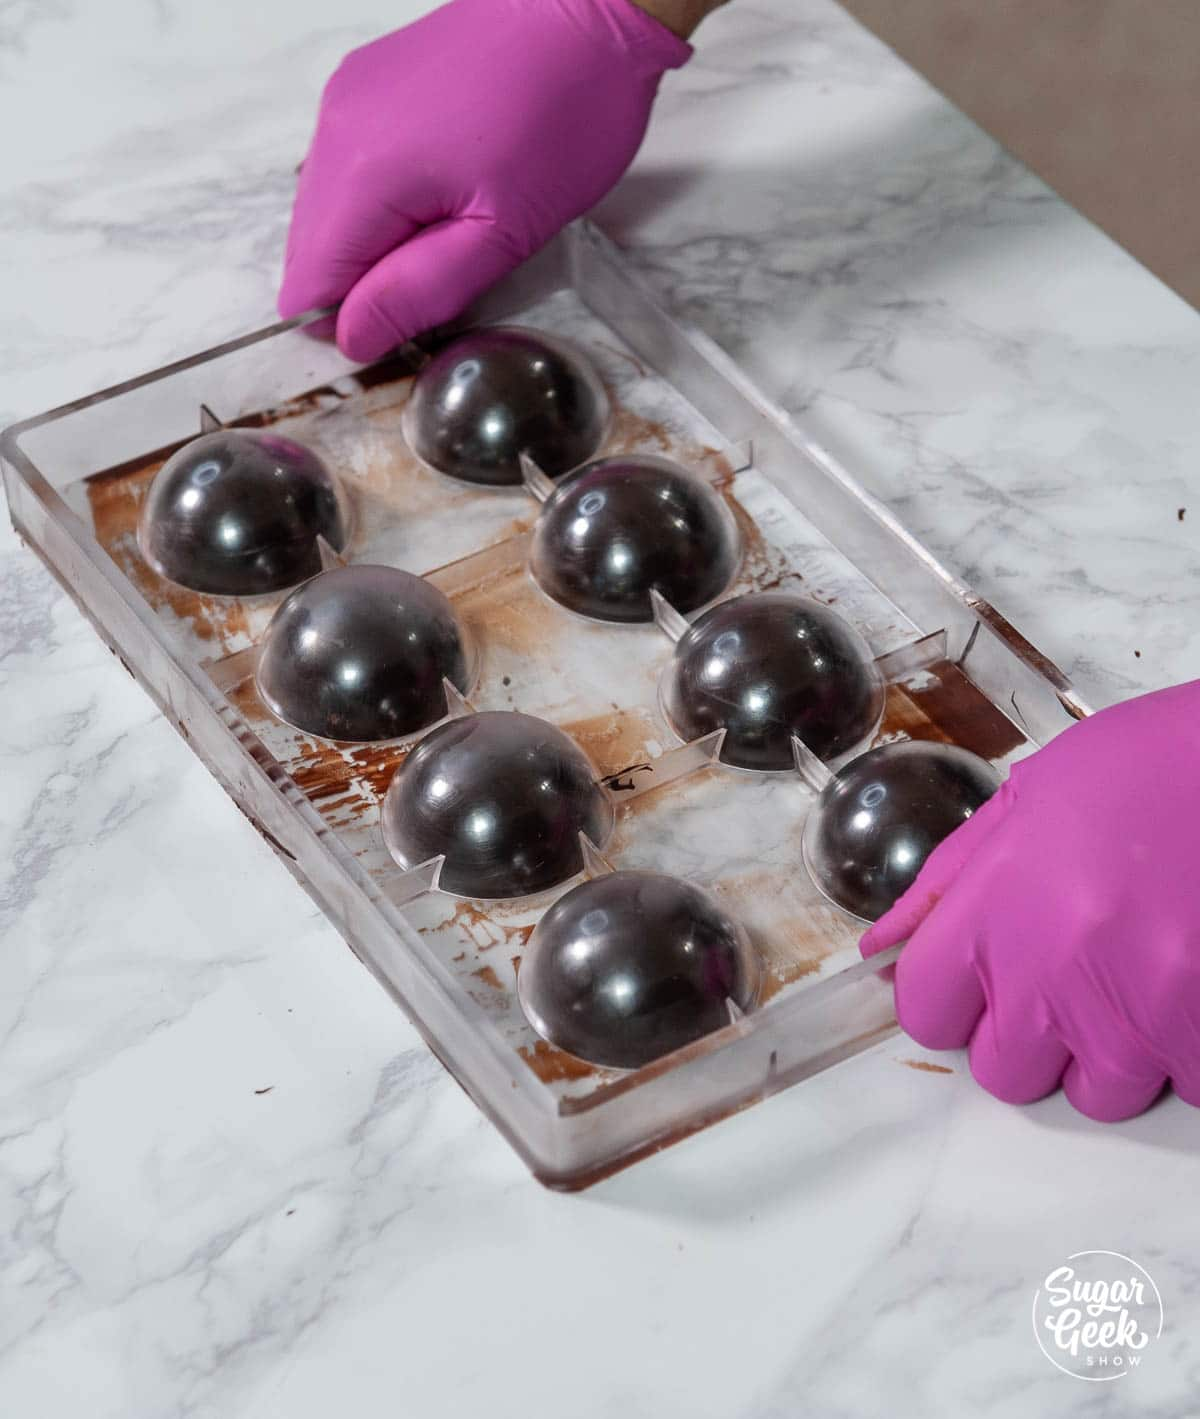 sphere mold with chocolate on a white counter